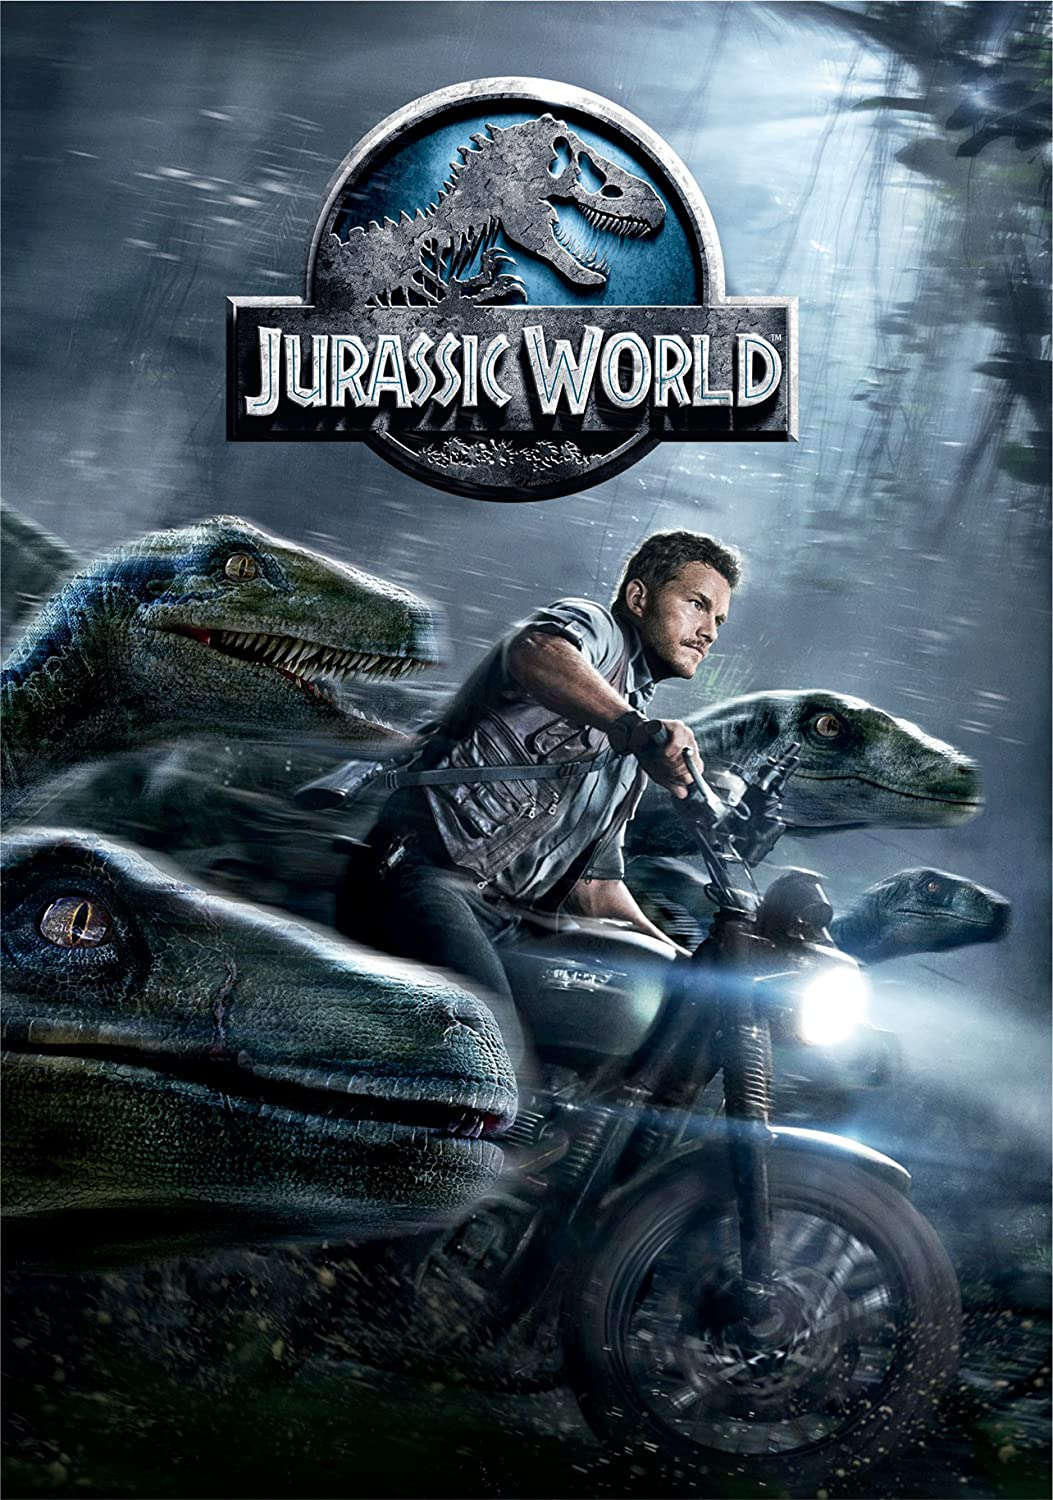 Image result for jurassic world dvd